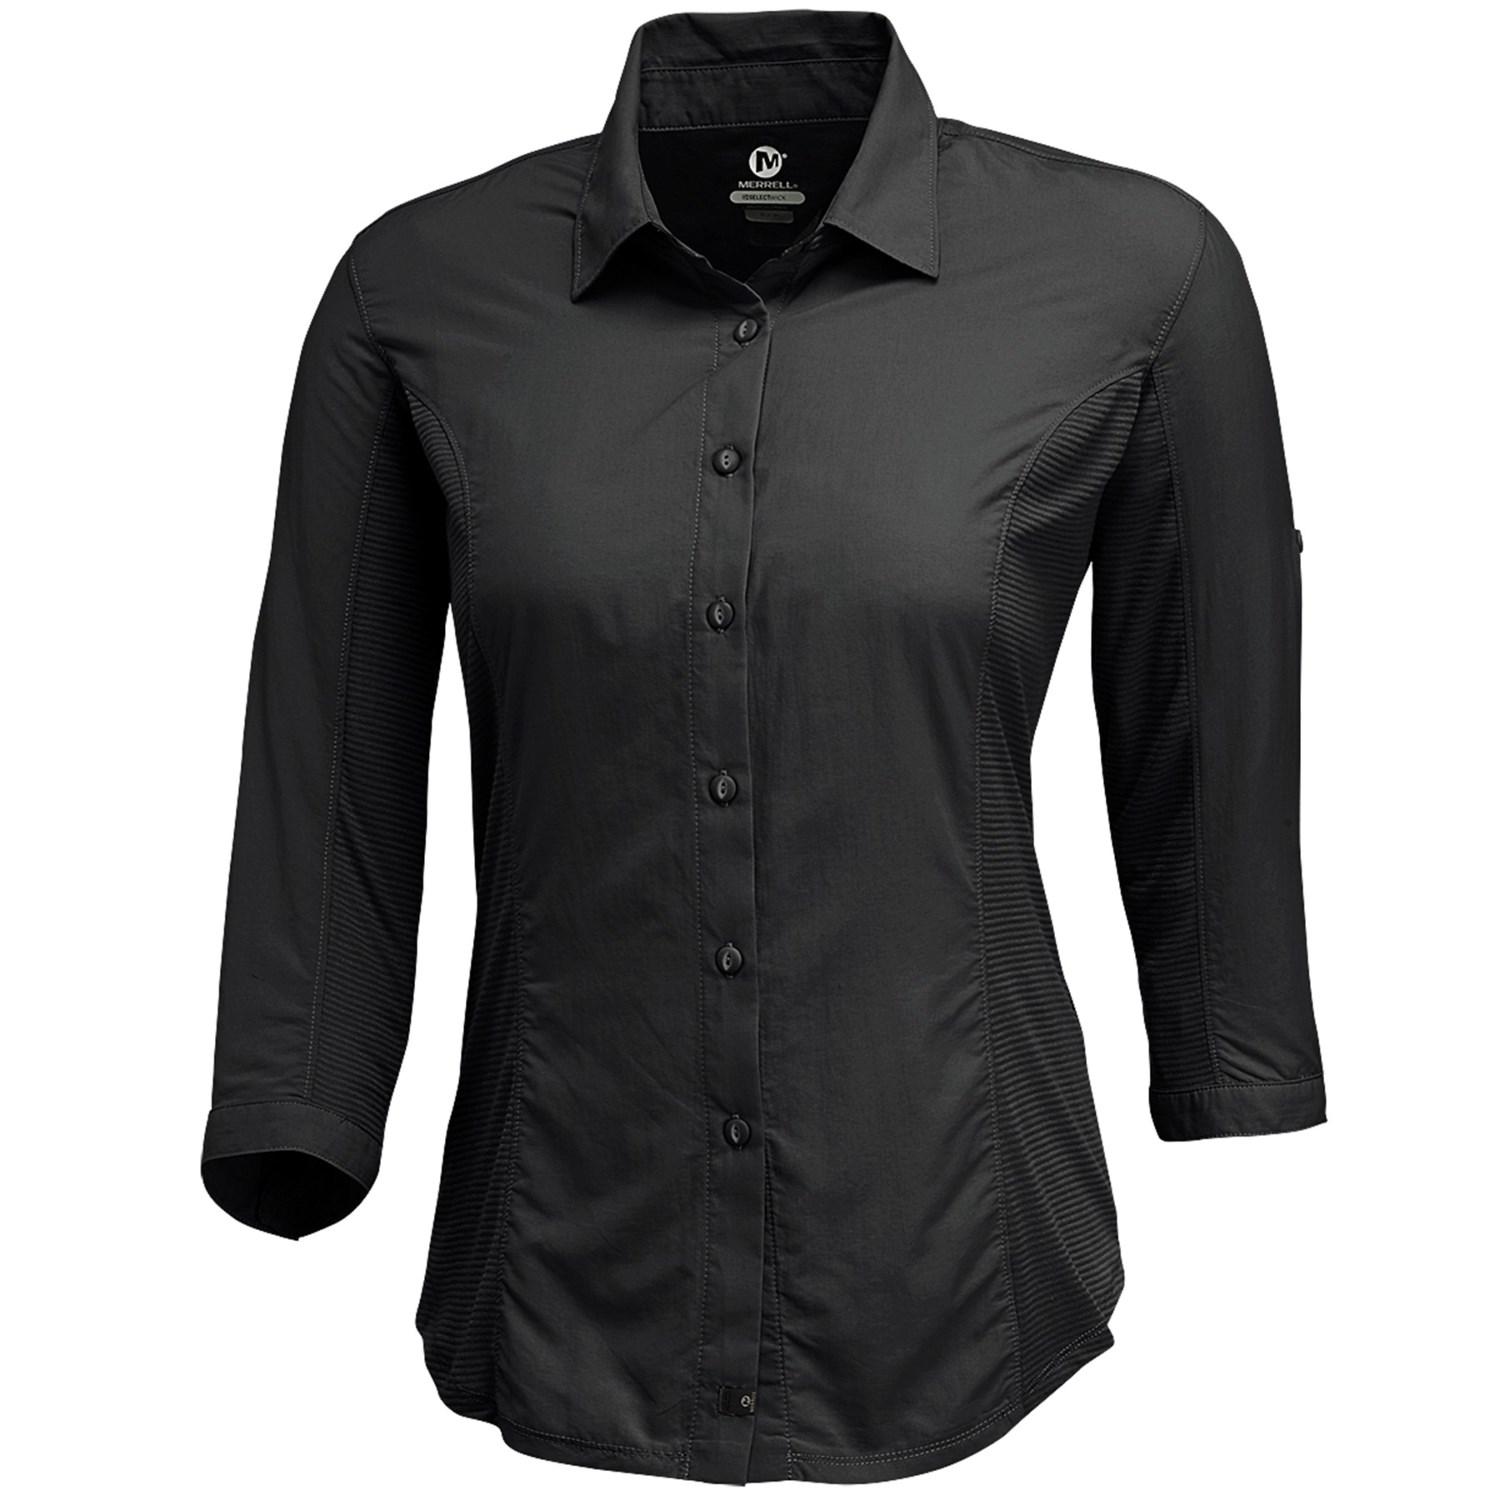 Target / Women / black button shirt womens () Women's Striped Long Puff Sleeve Button-Up Shirt - Who What Wear™ Who What Wear. $ Choose options. Women's Long Sleeve Button-Up Floral Western Shirt Dress - Wild Fable™ Black.